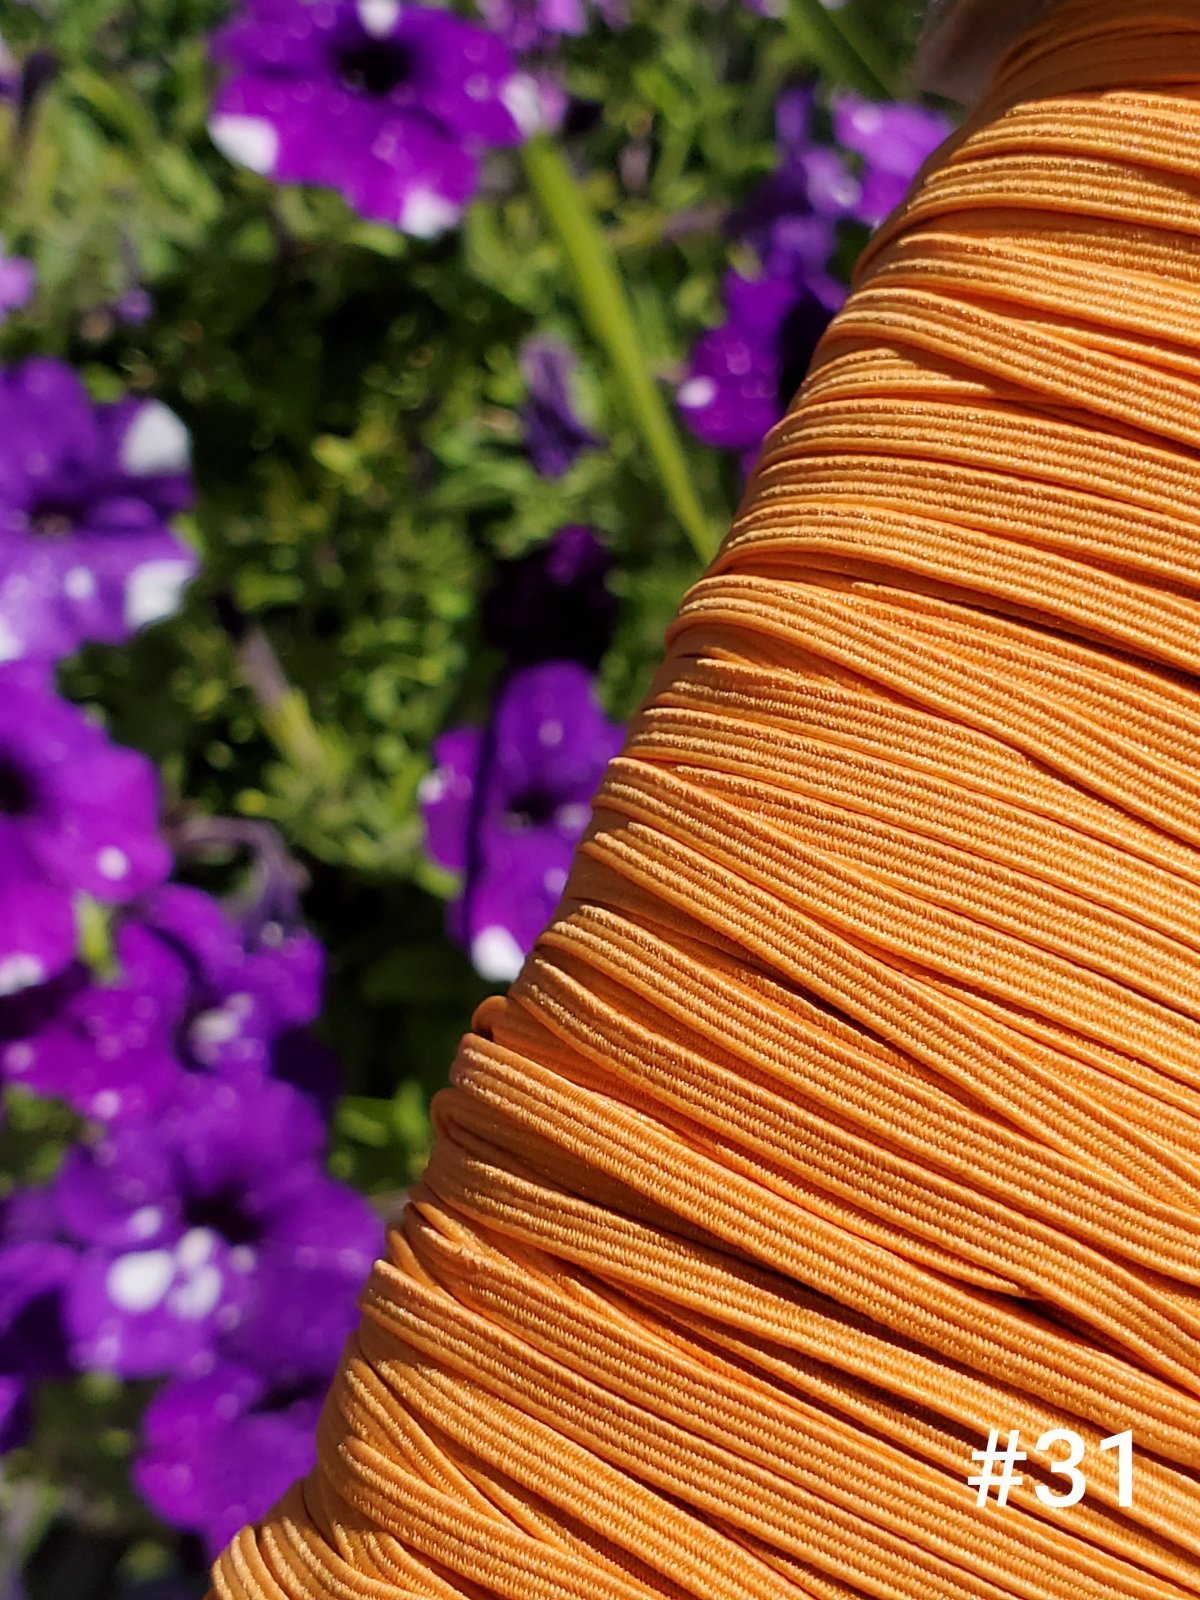 Cindy-rellas 1/8 inch (3mm) Elastic - Light Orange